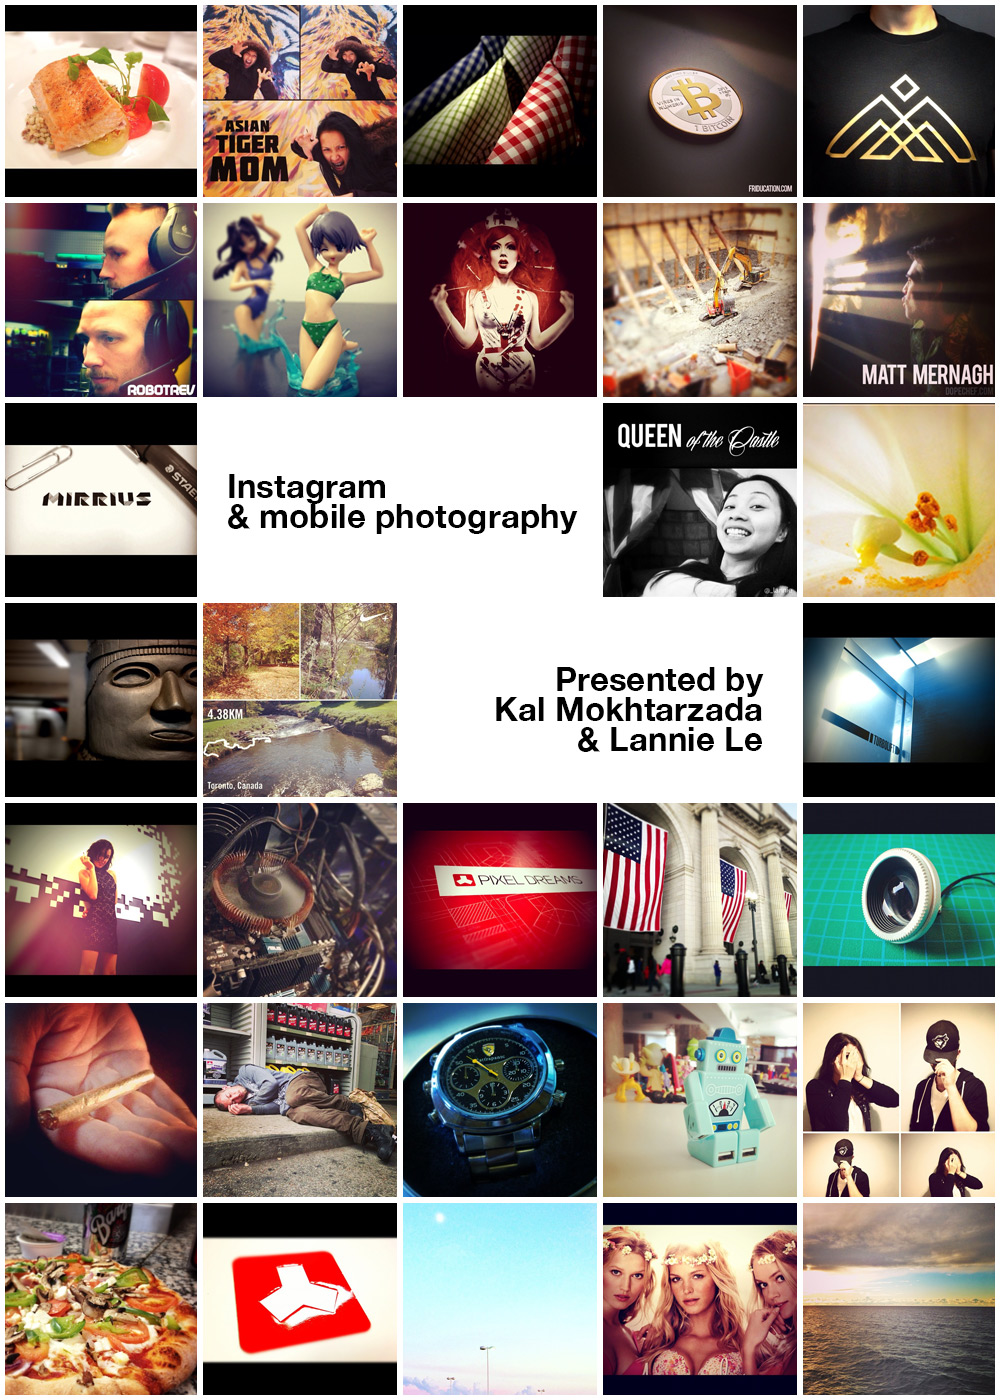 Instagram and mobile photography workshop